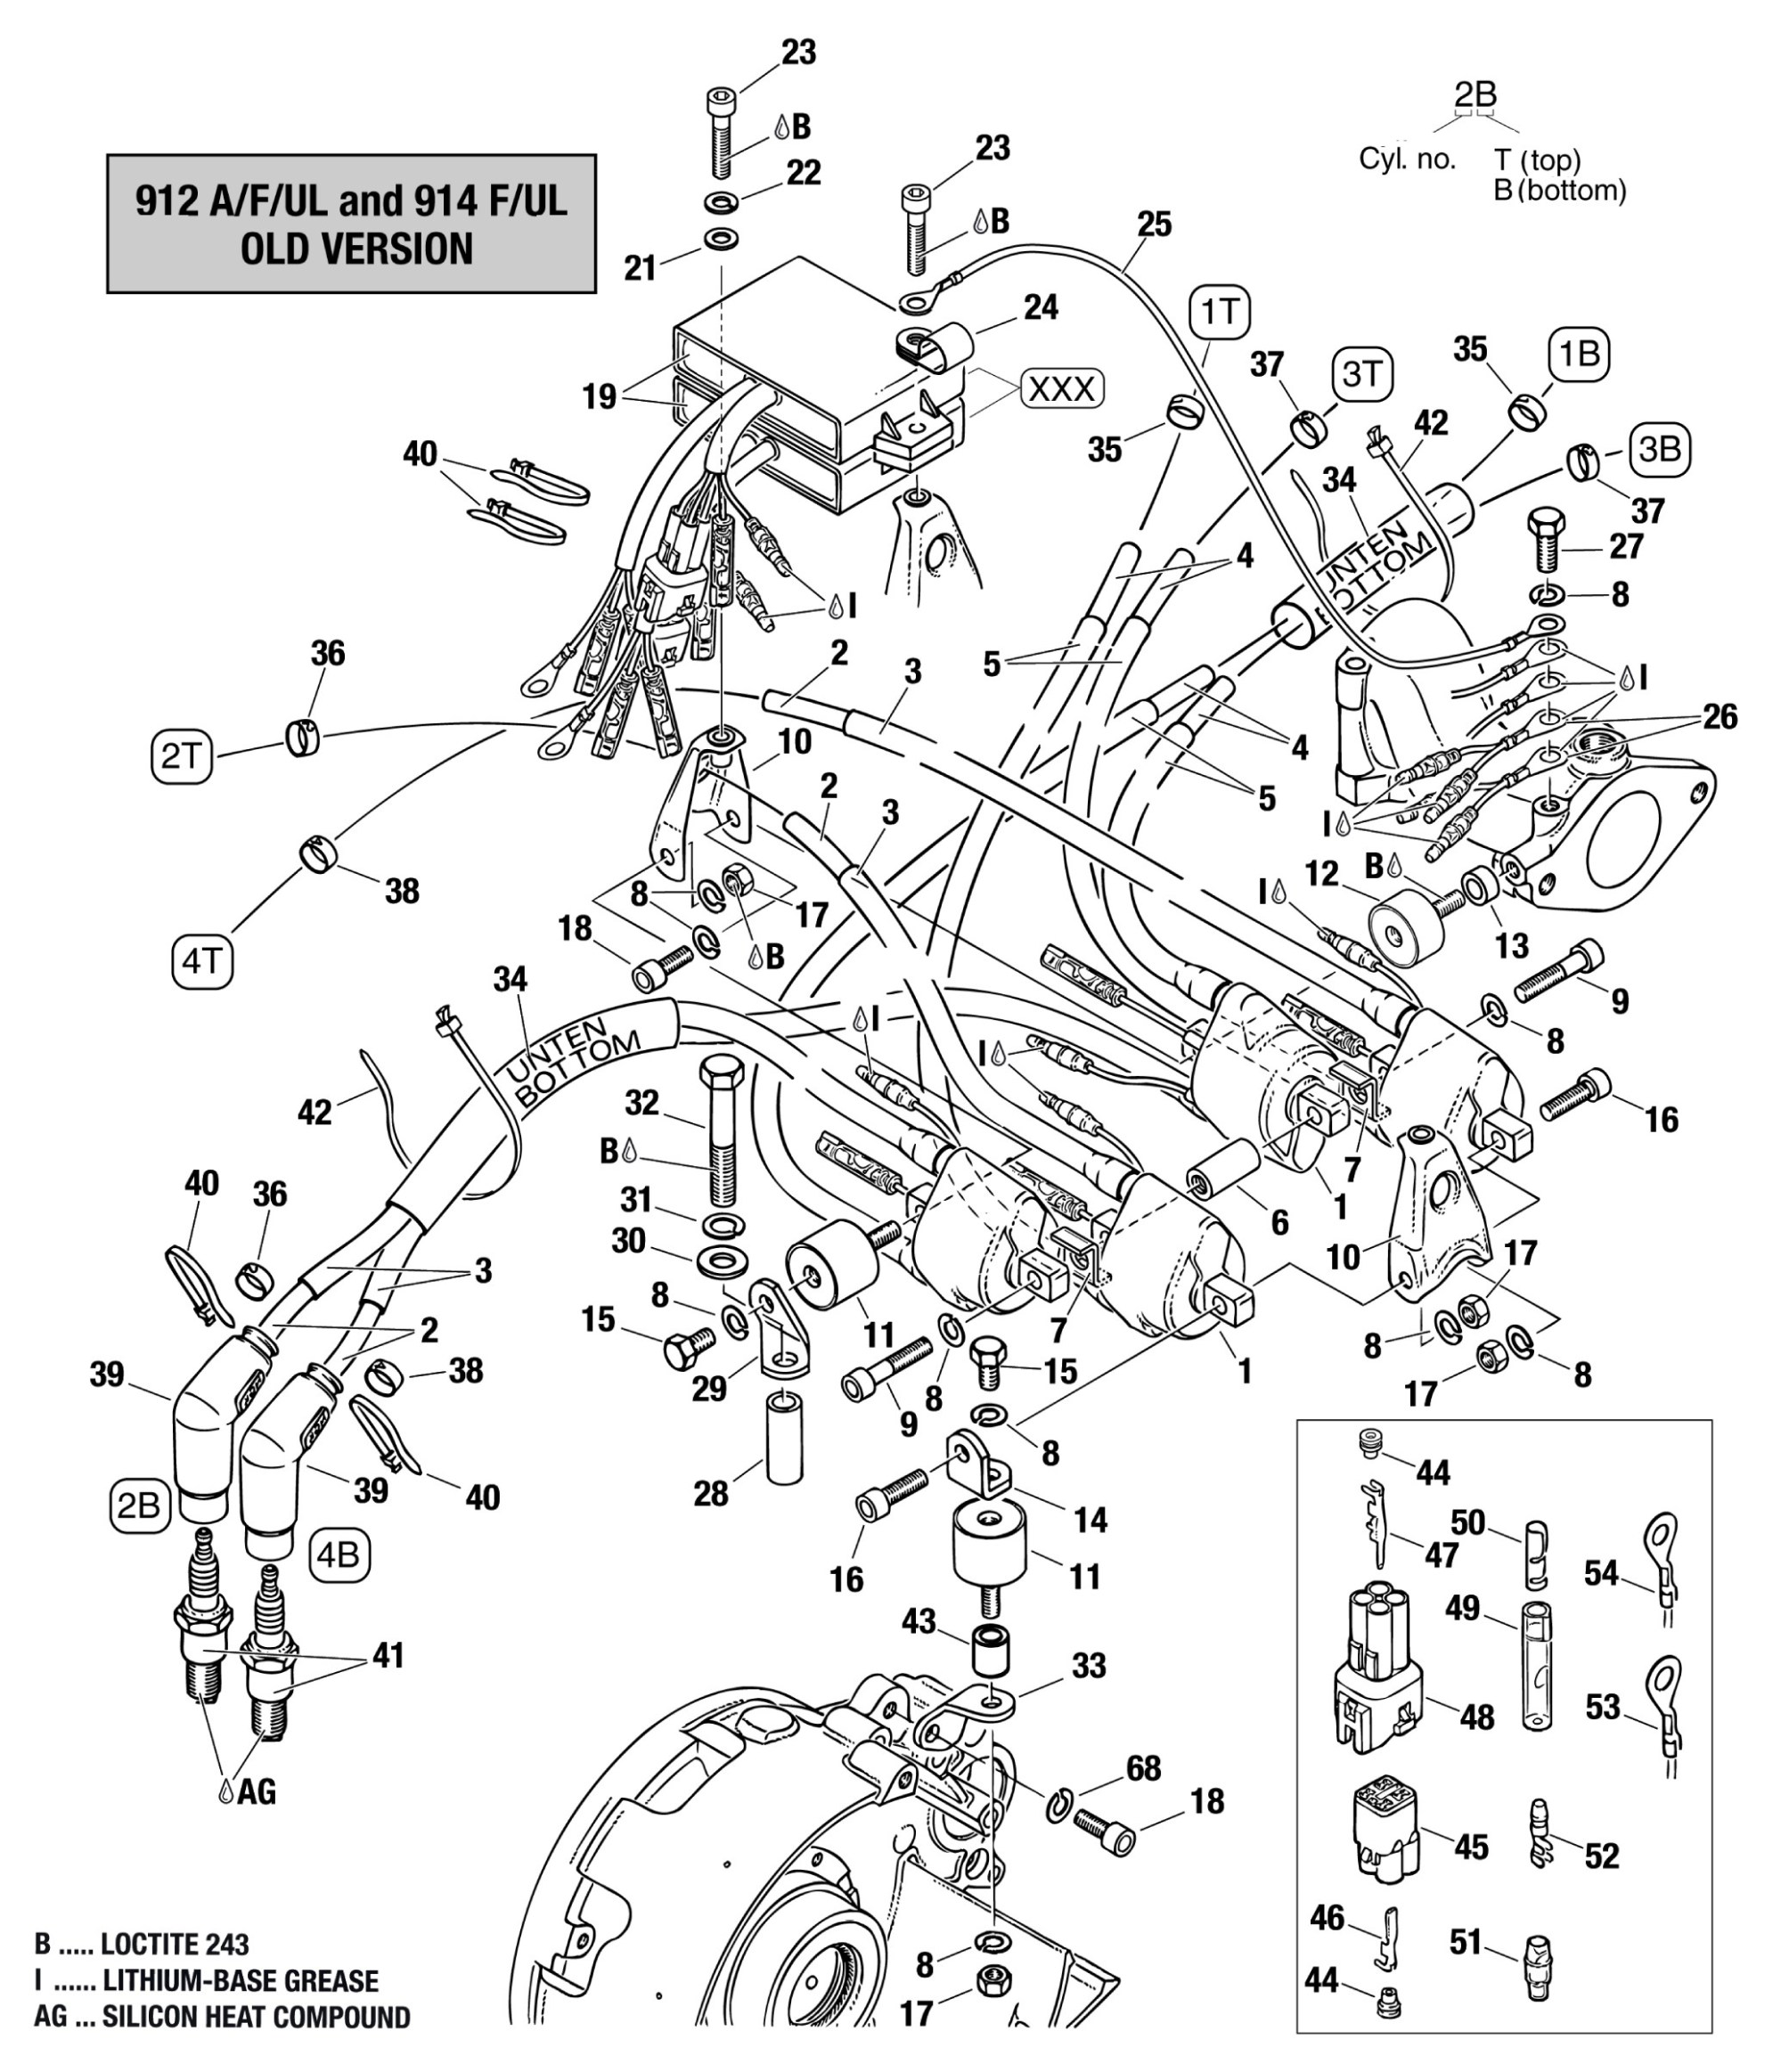 hight resolution of rotax 912 ignition wiring diagram wiring library912 u0026 914 double ignition coil assembly